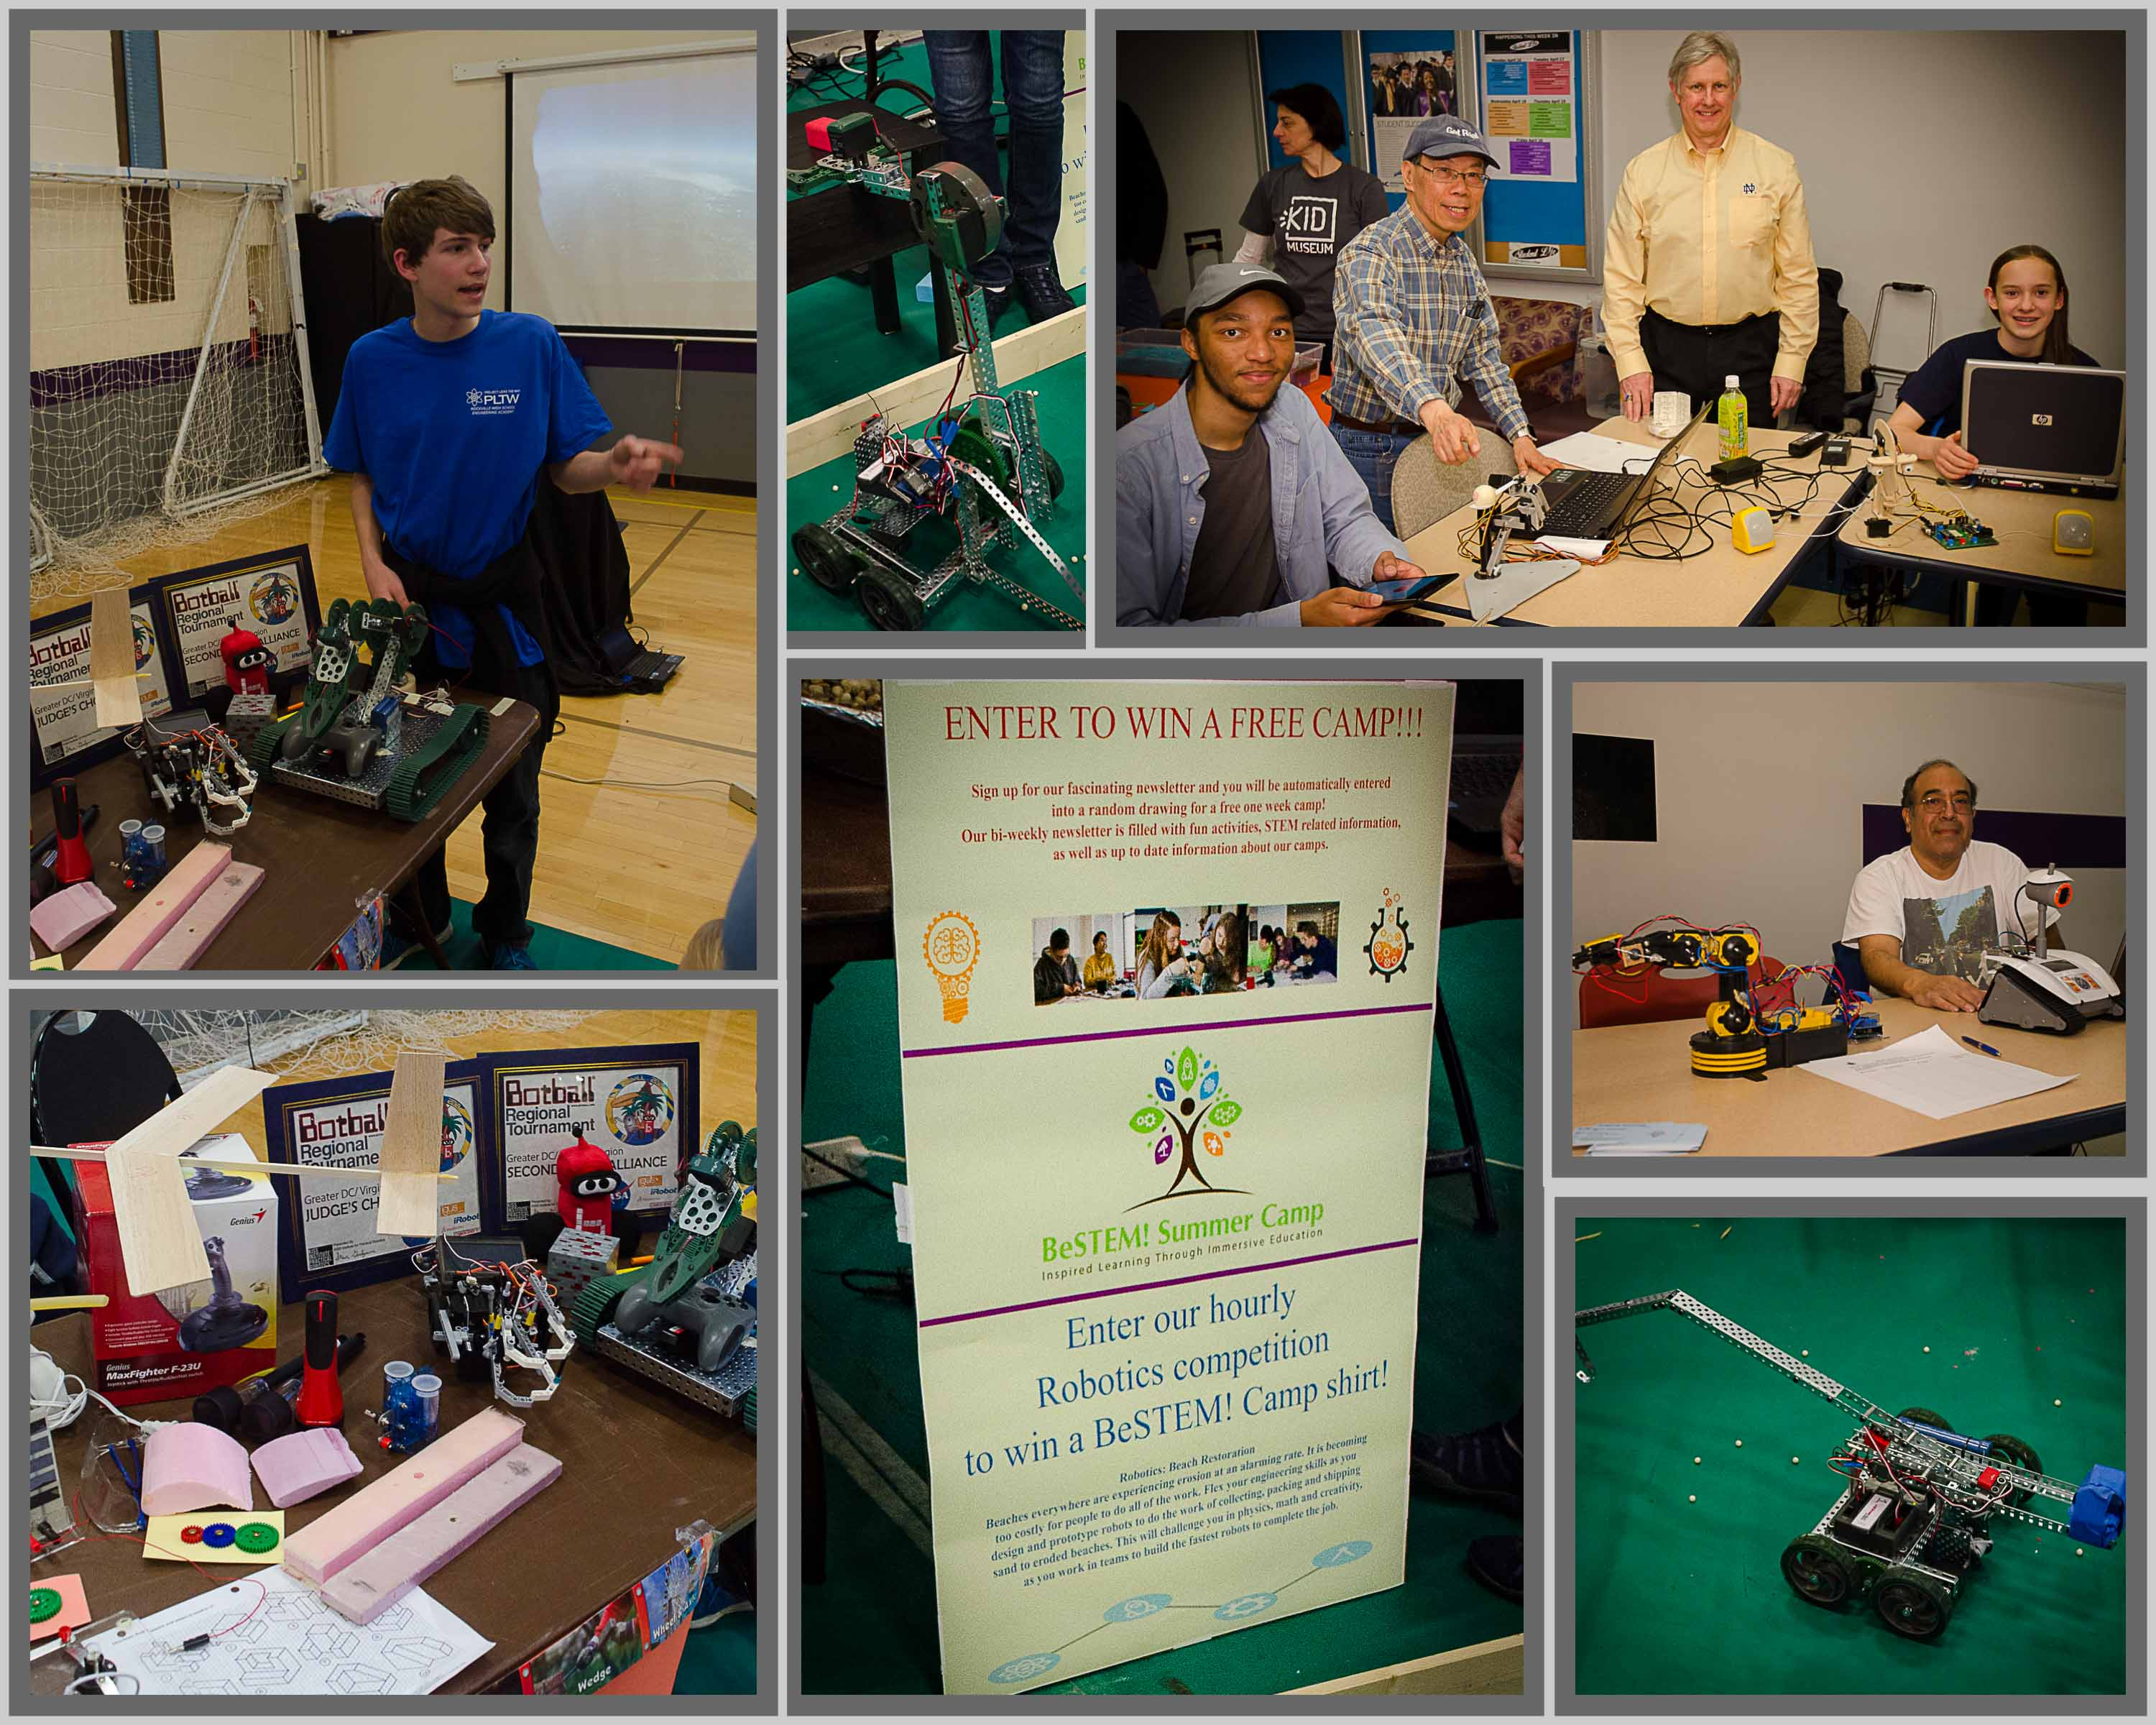 Collage of pictures of promoting and teaching robotics.